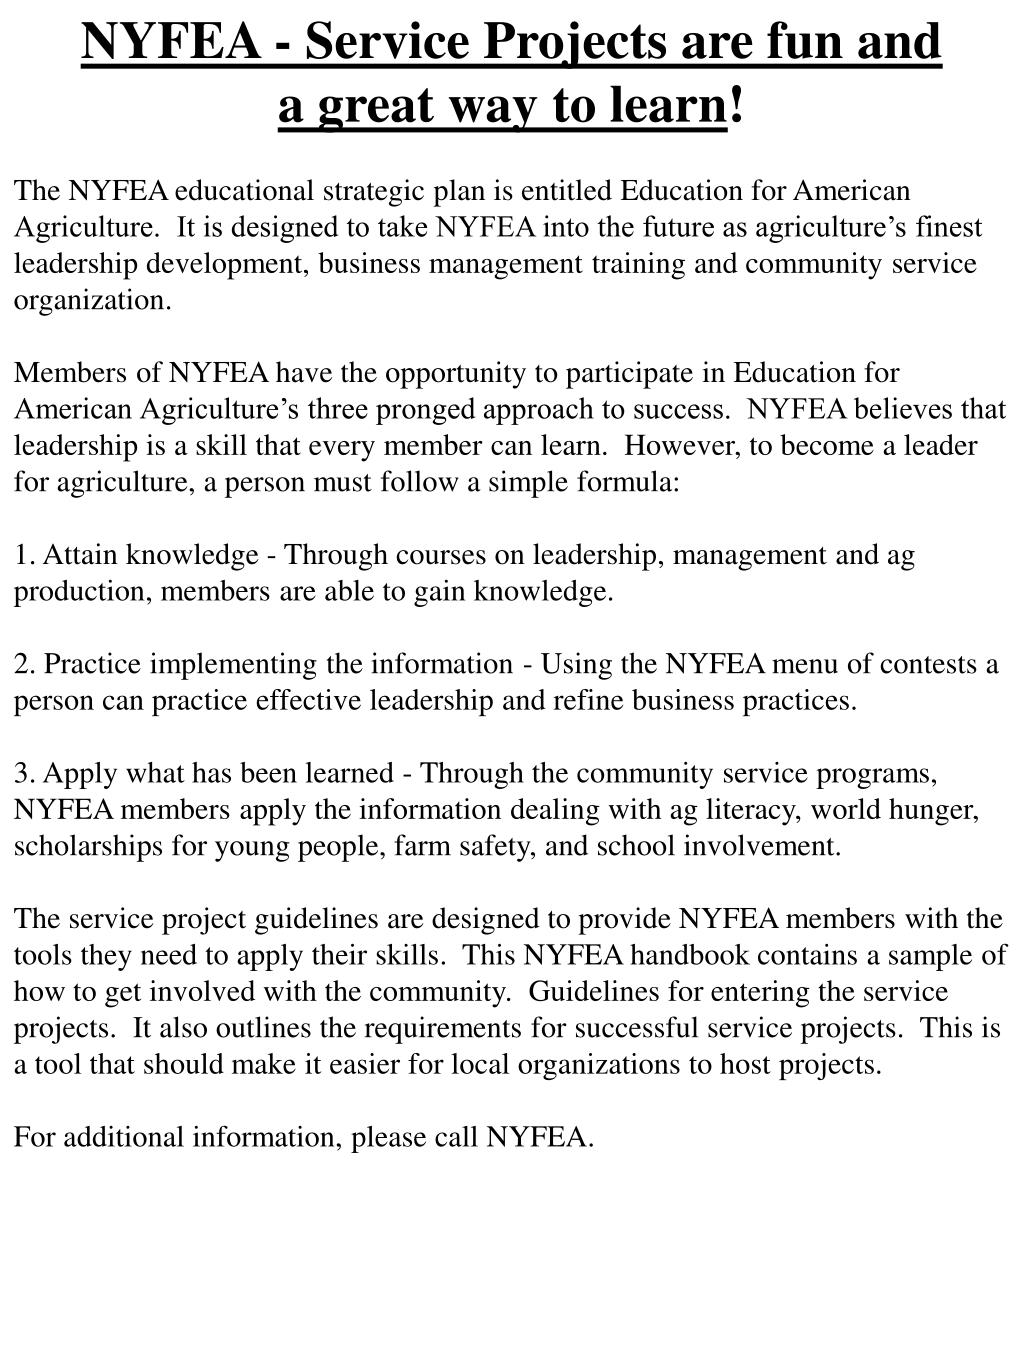 NYFEA - Service Projects